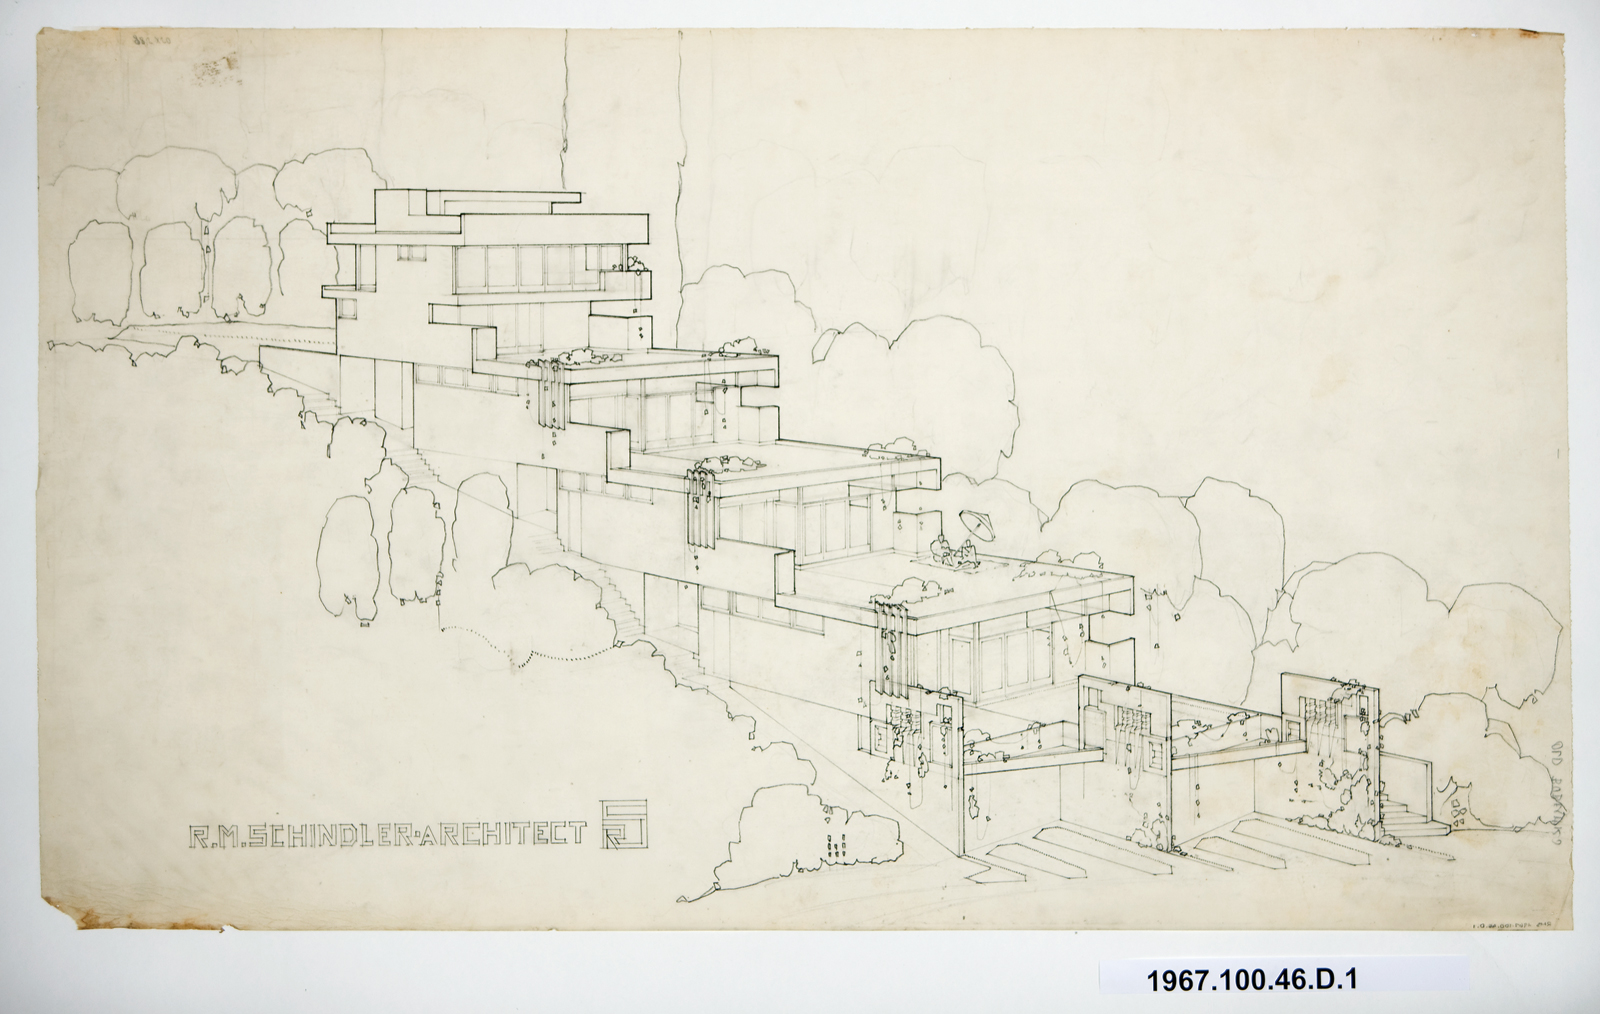 Bubeshko Apartments early blueprints archival document